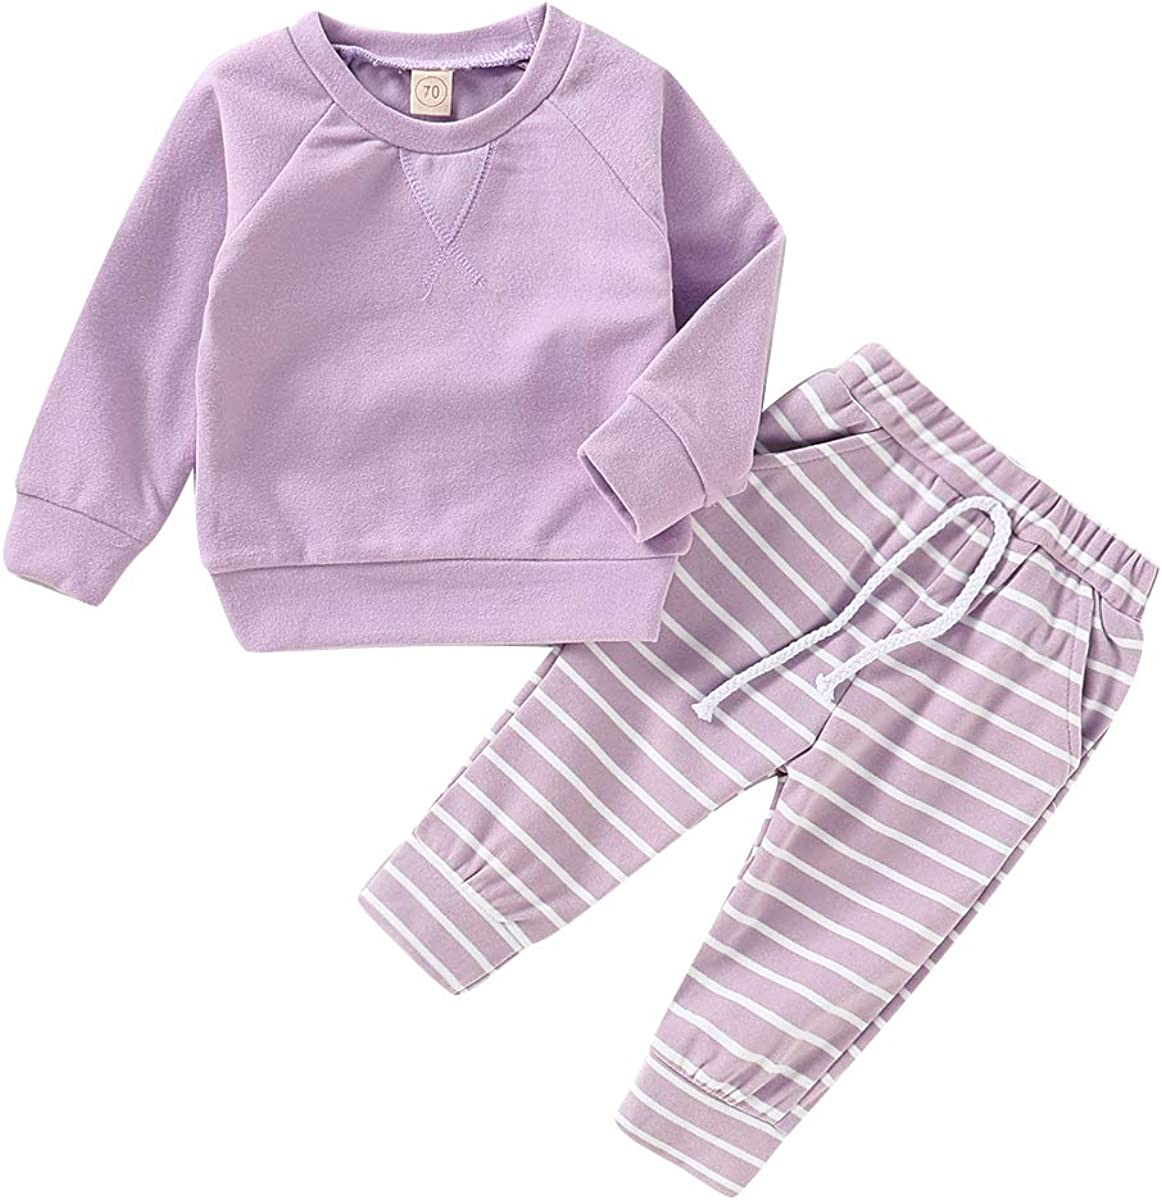 Happy Town Newborn Baby Girls' Clothing Boy Long Sleeve Top and Long Pants Set Baby Girl Sweat Outfits